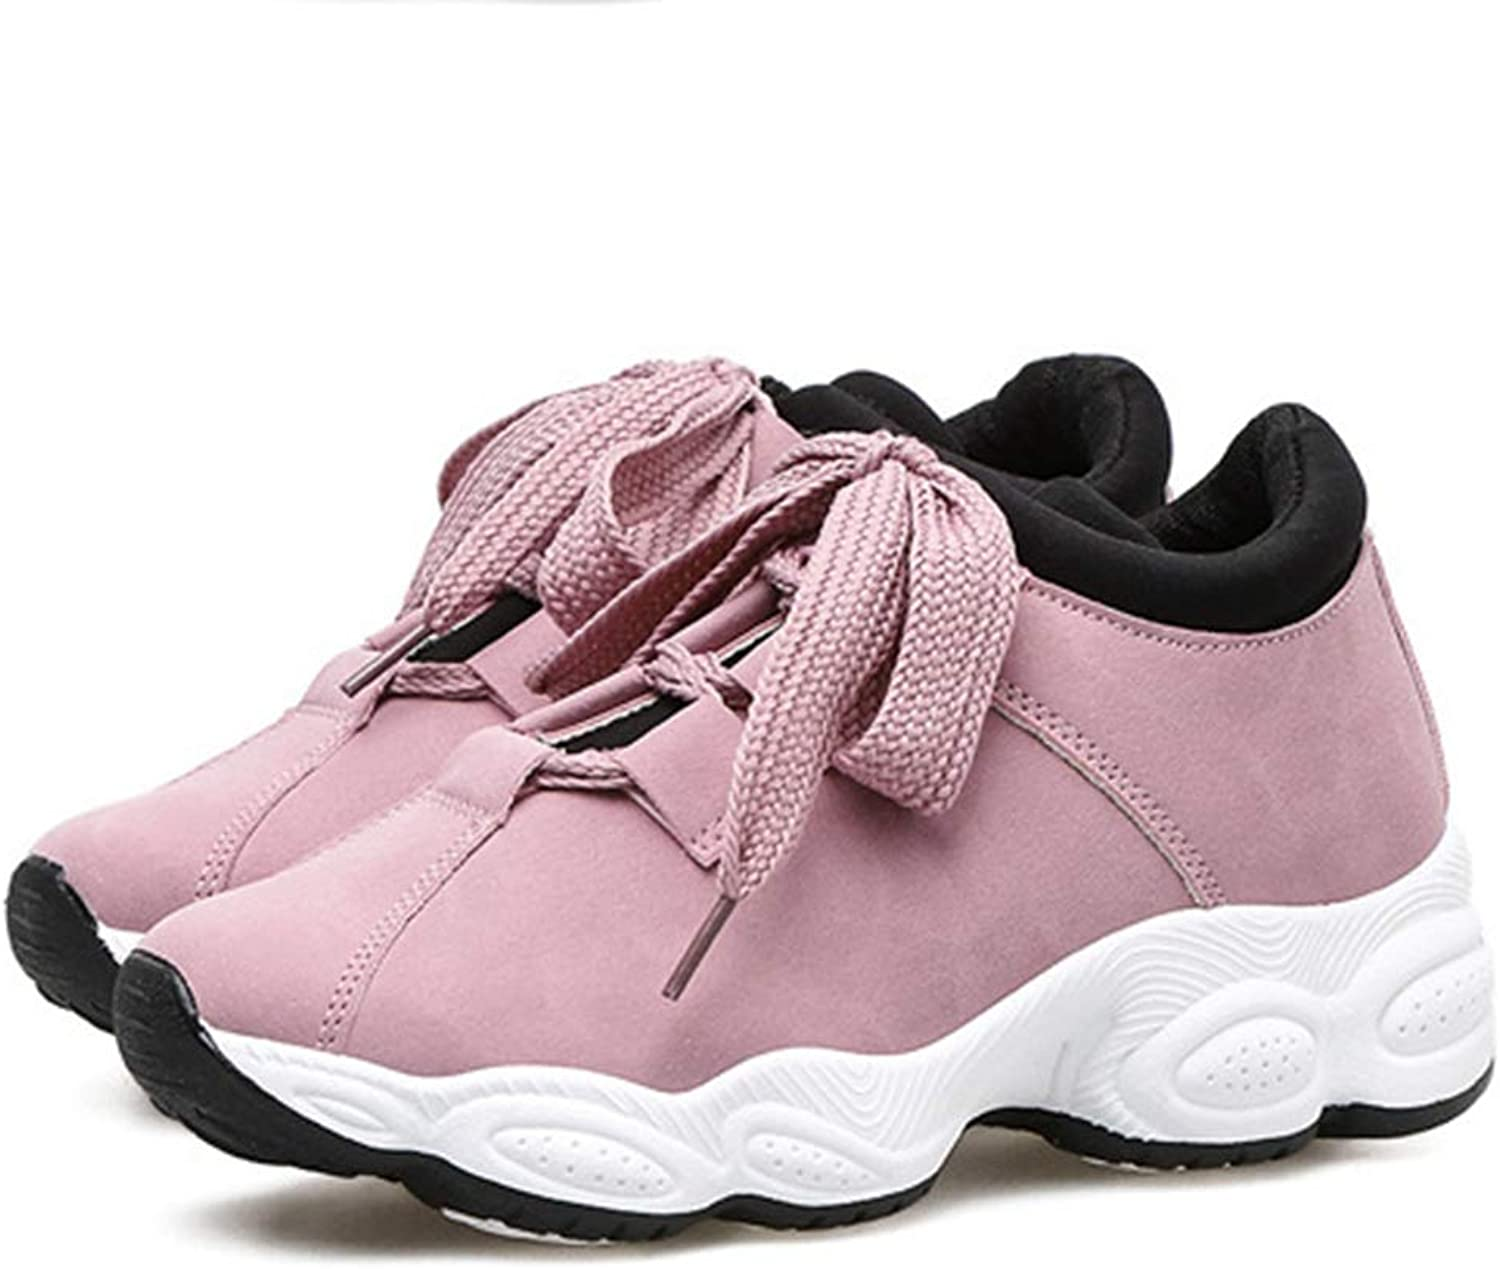 T-JULY Women's Fashion Platform Sneakers Running Sports Flats Breathable shoes Slip-on Dress Casual Walking shoes